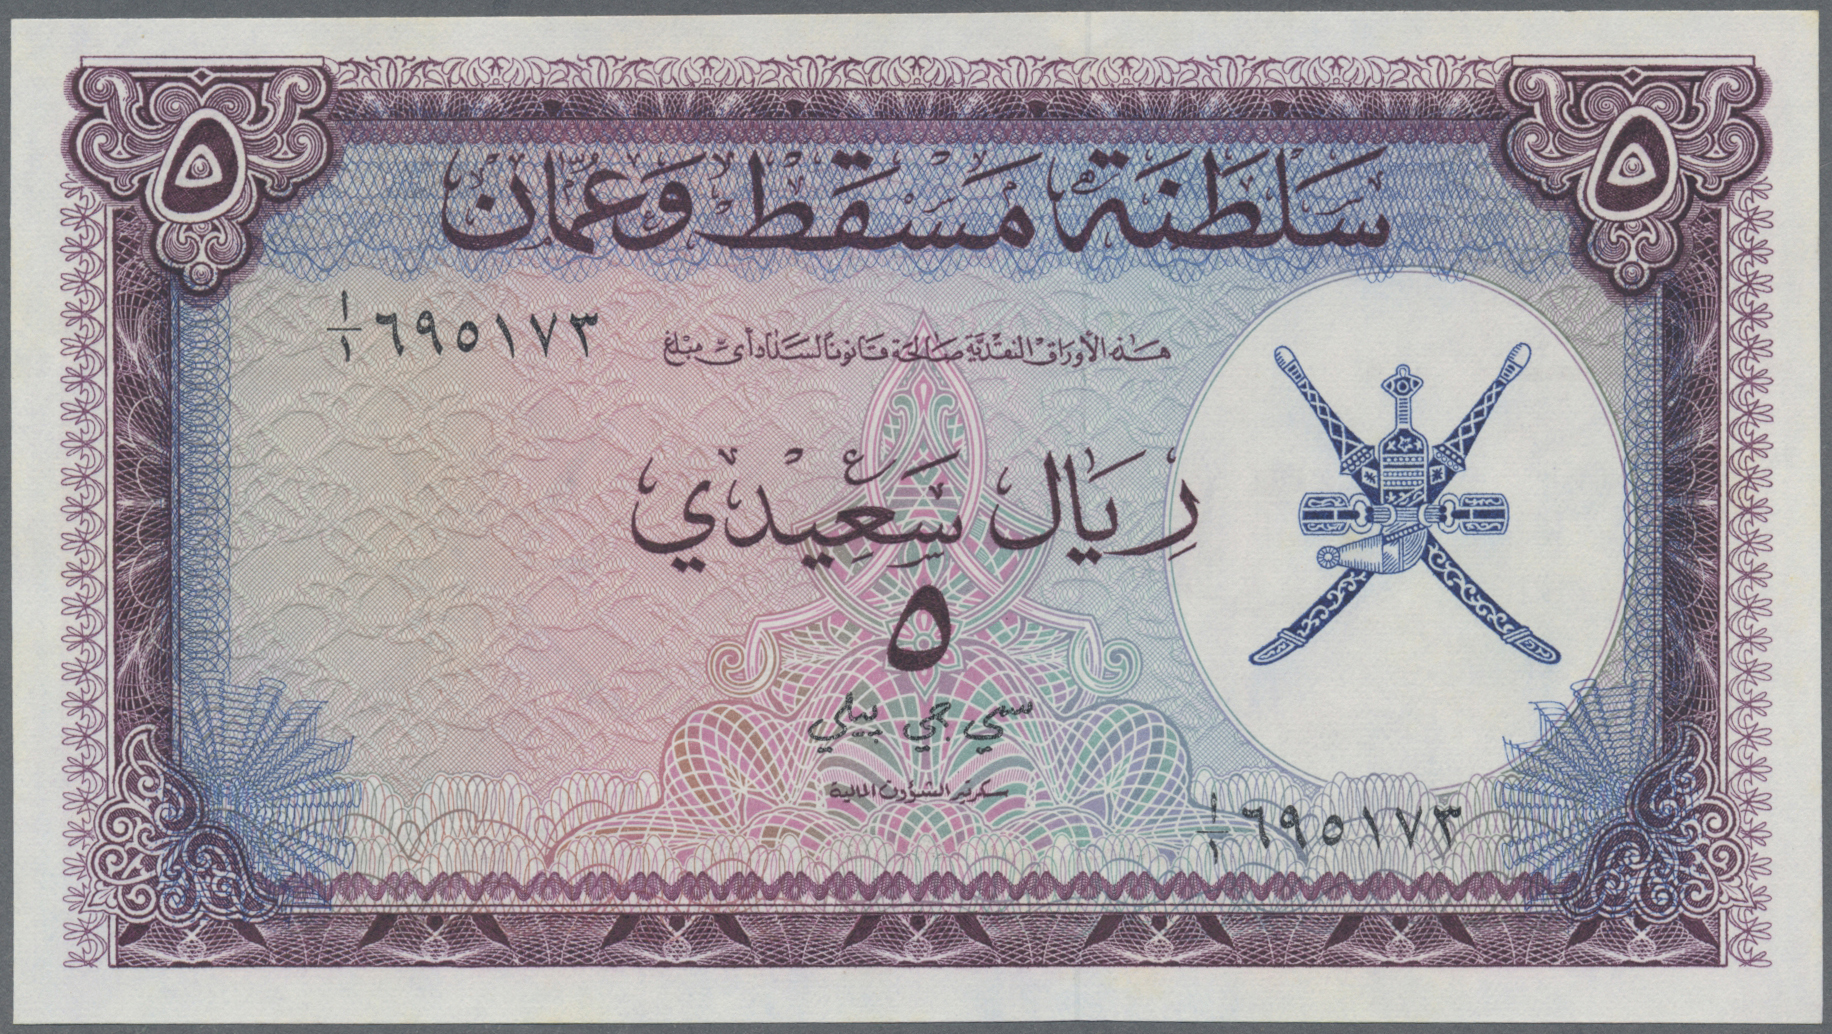 Stamp Auction Oman Banknoten Banknotes Worldwide Auction 39